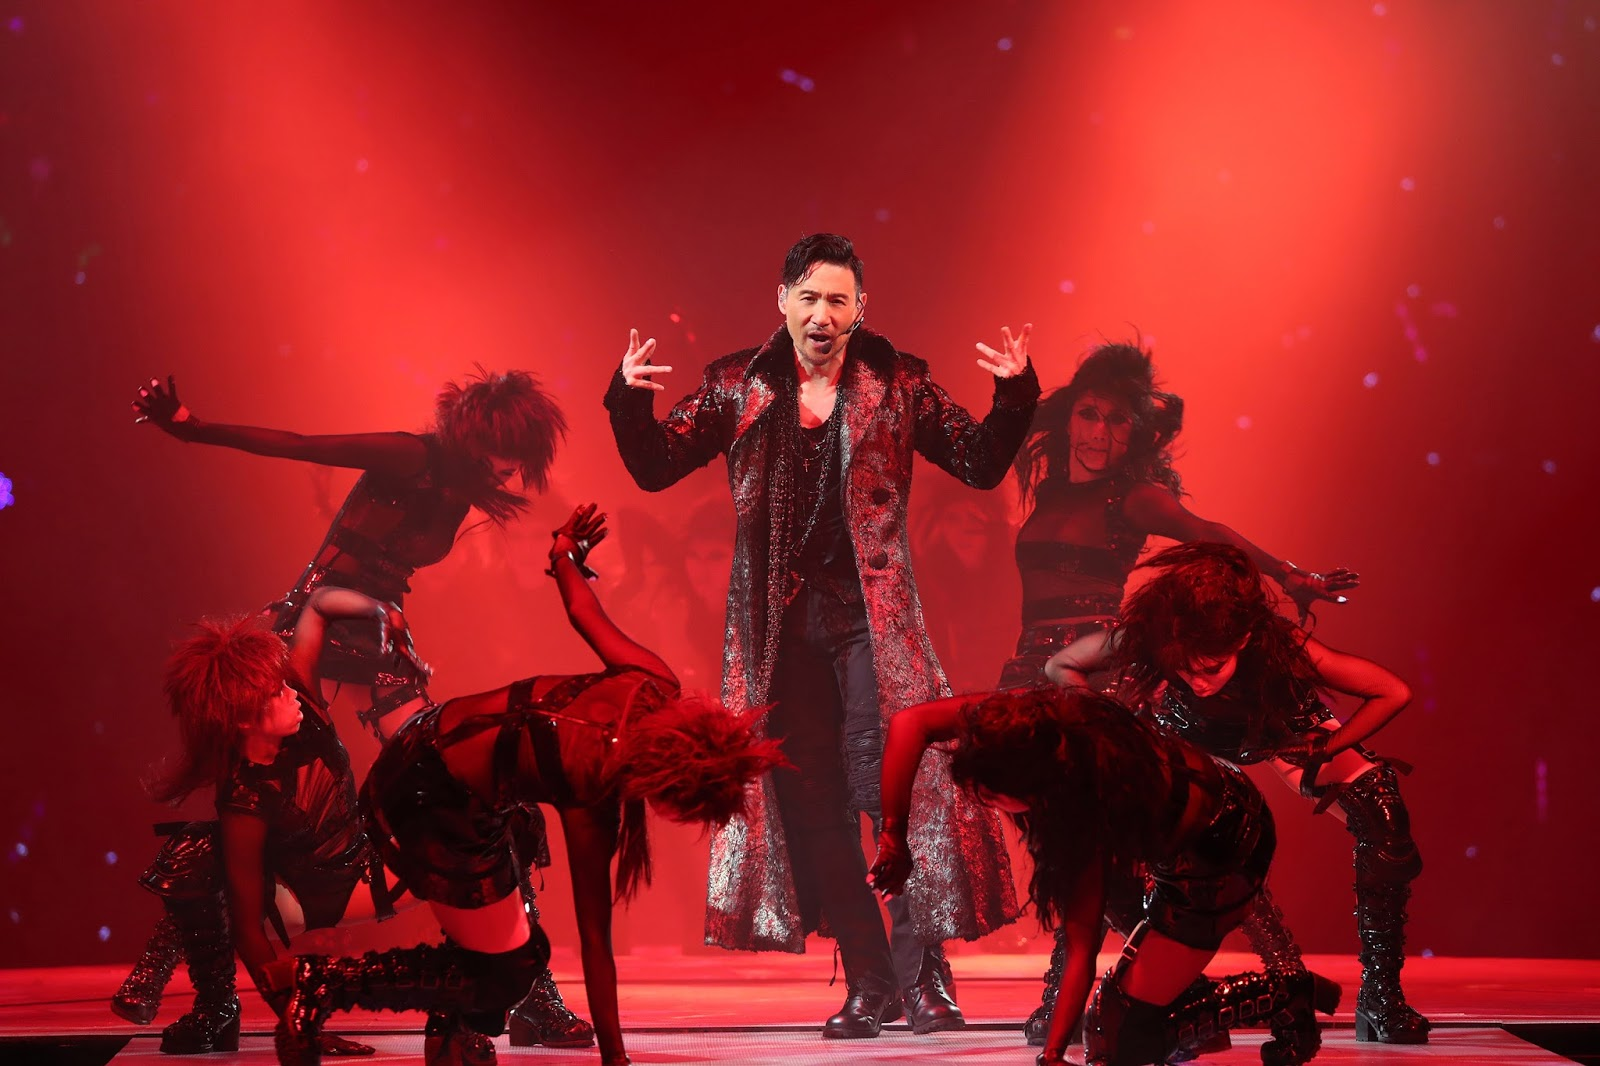 Jacky Cheung brings his new concert tour to Malaysia and Singapore